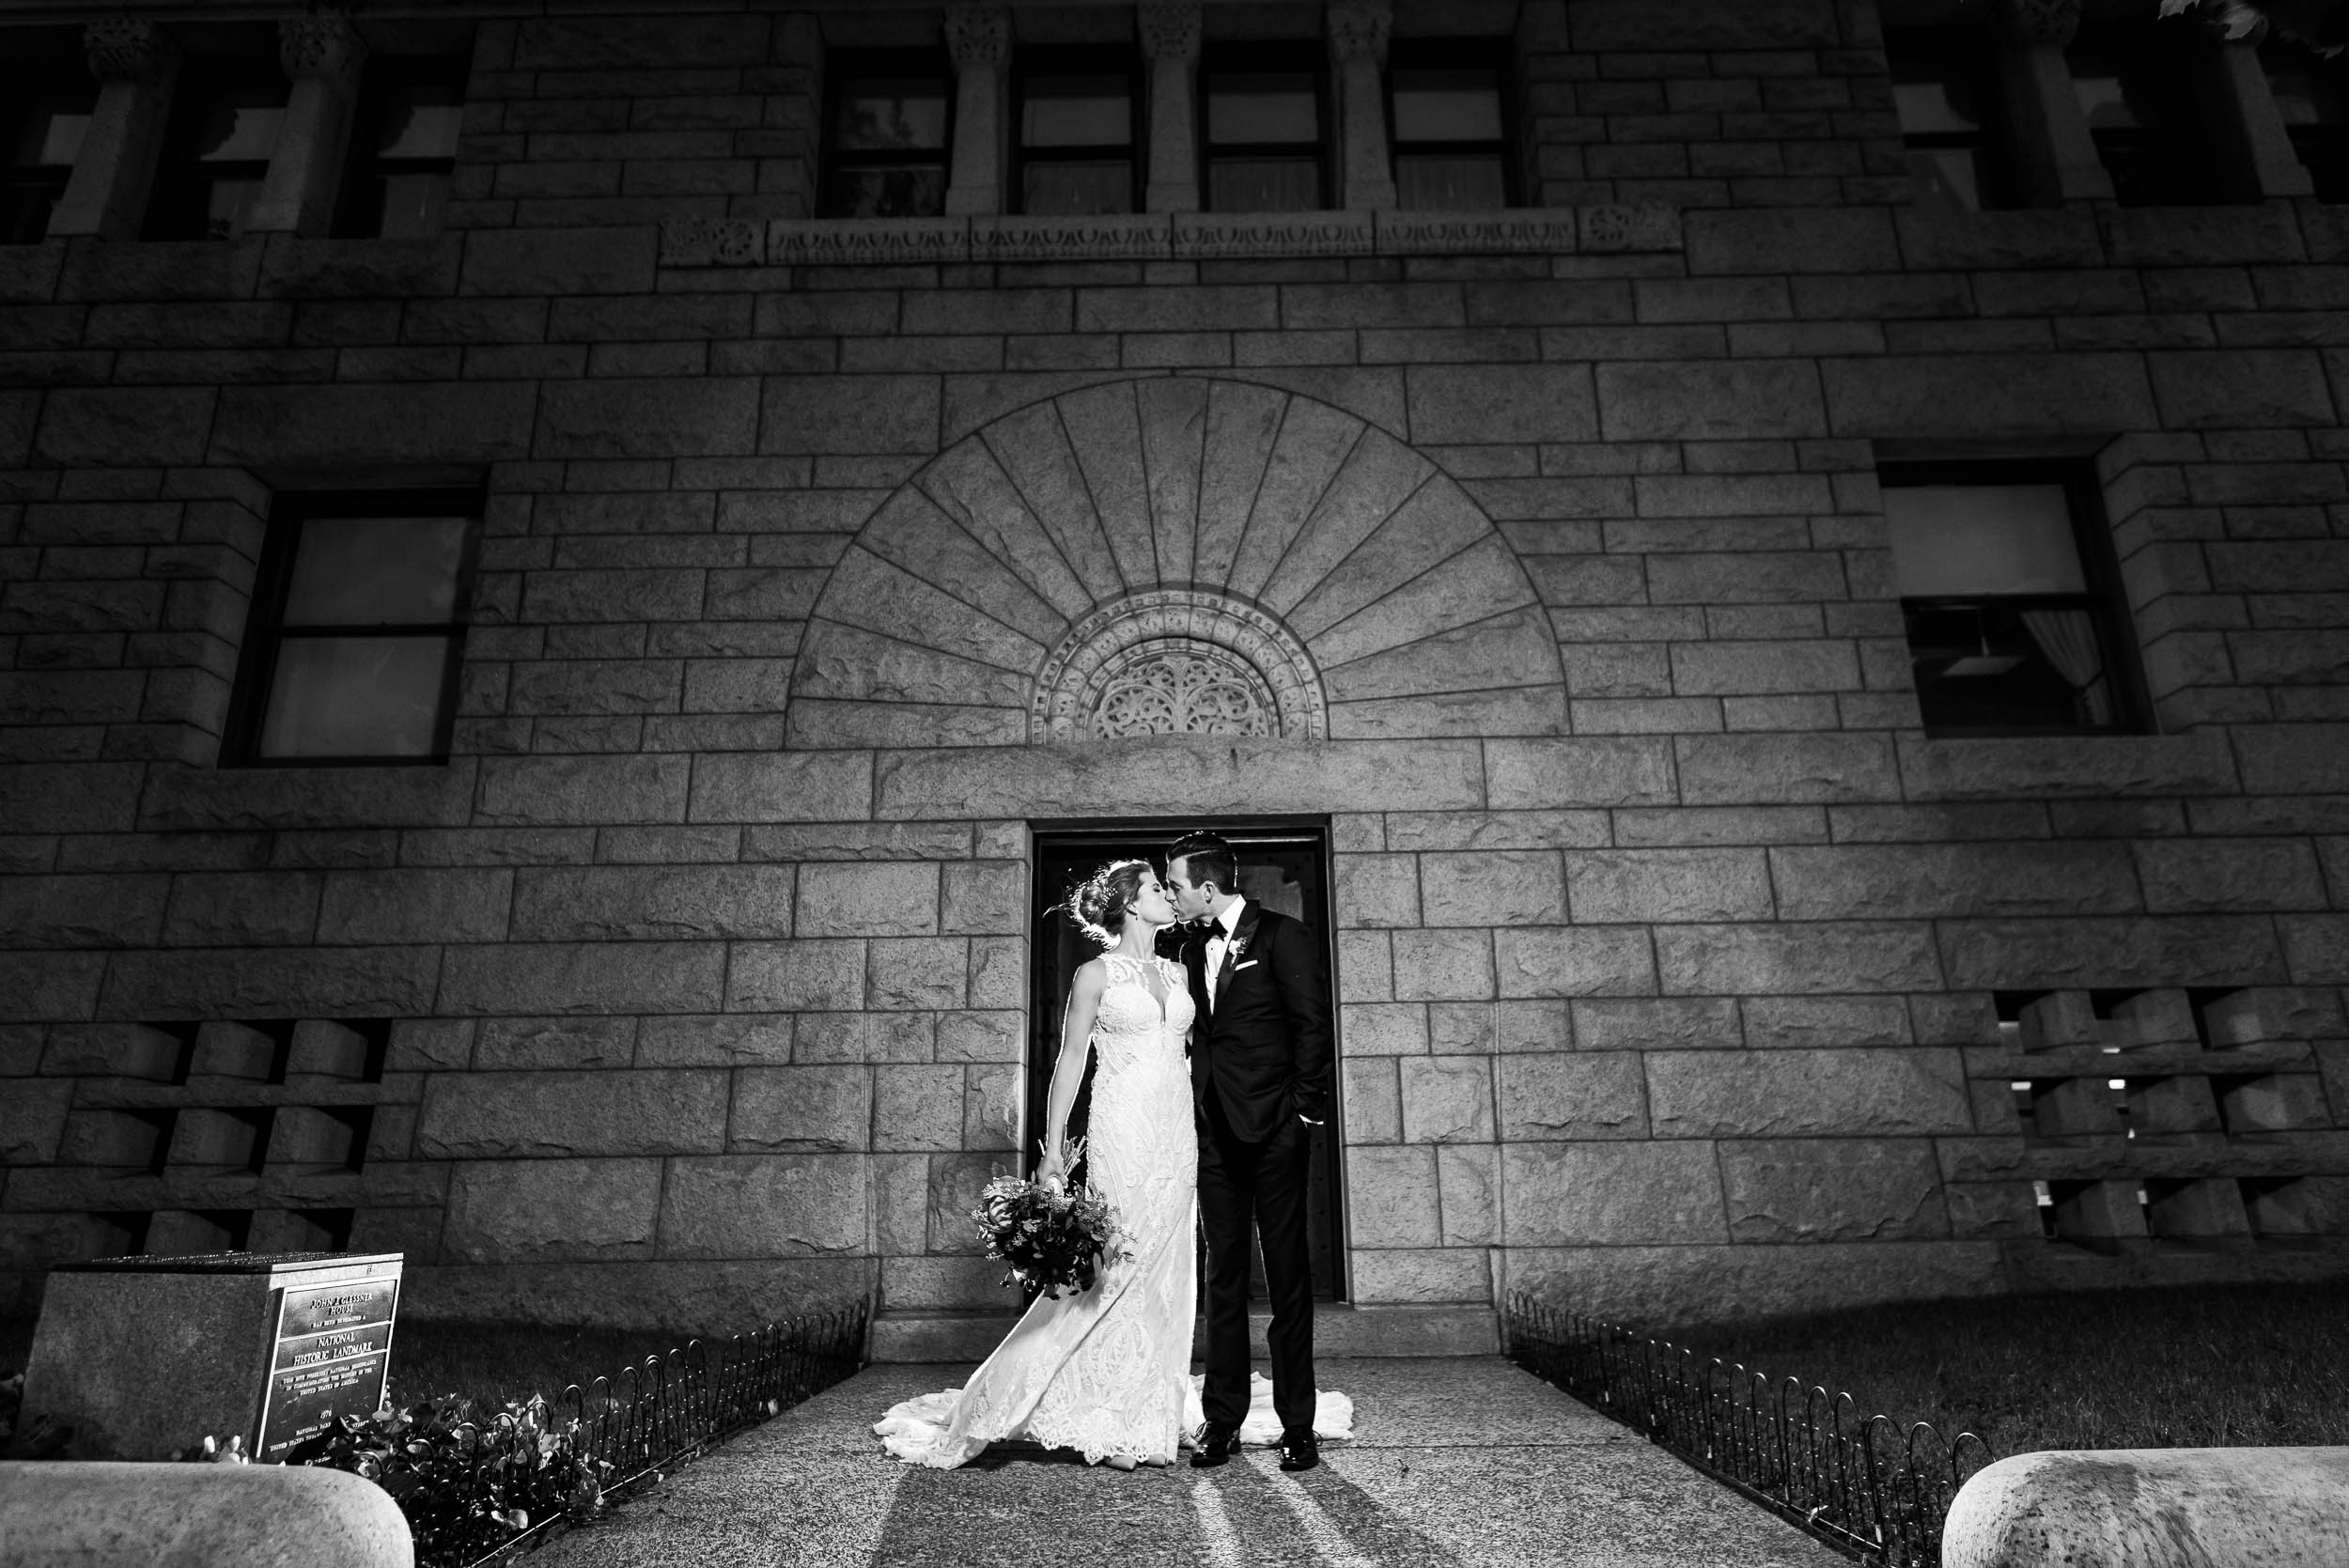 Creative night portrait of the bride and groom during their Glessner House Chicago wedding.